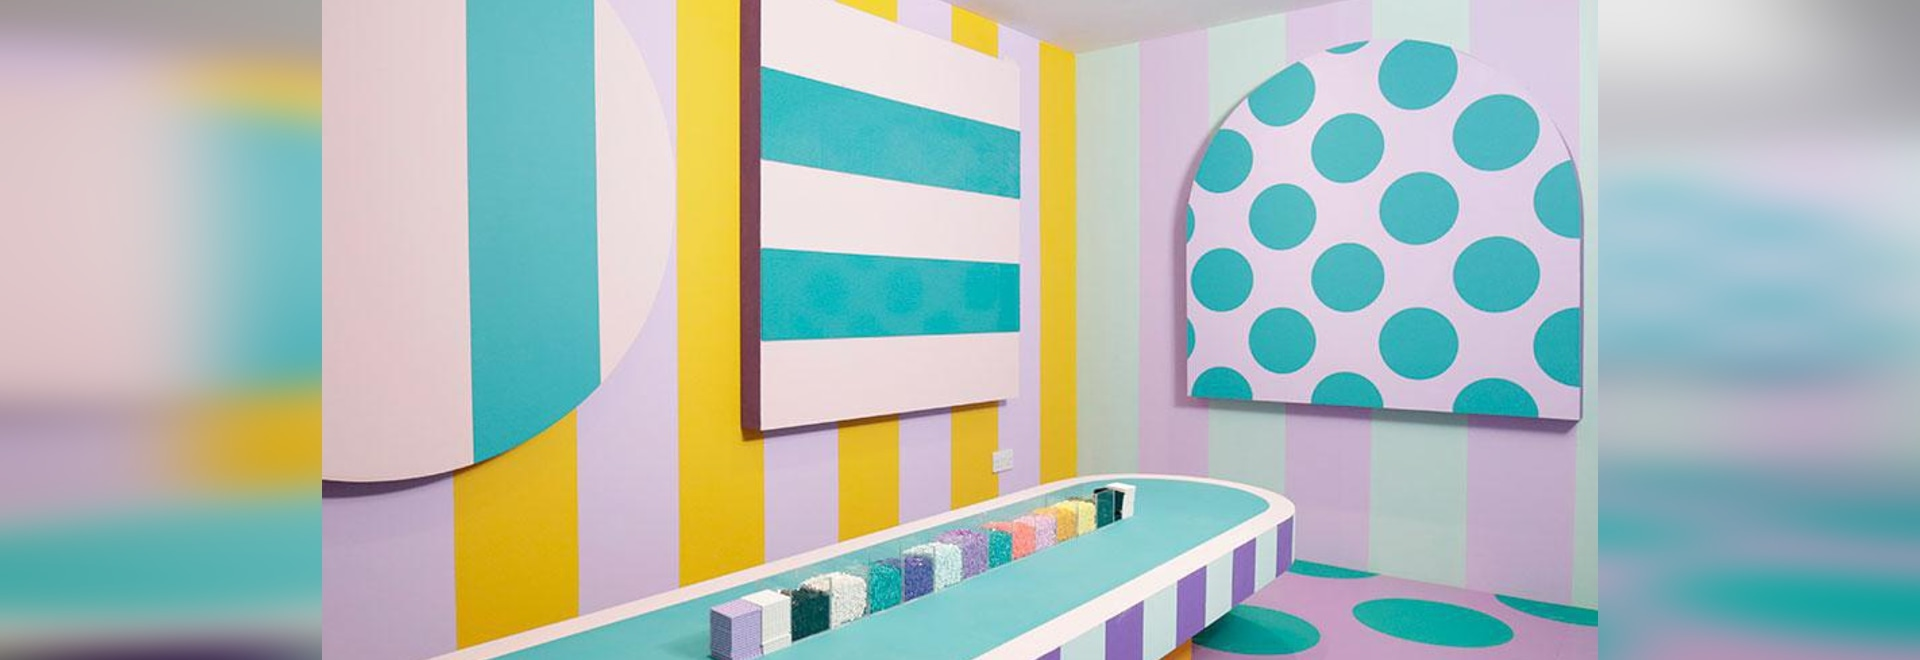 Inside House Of Dots by Camille Walala for Lego